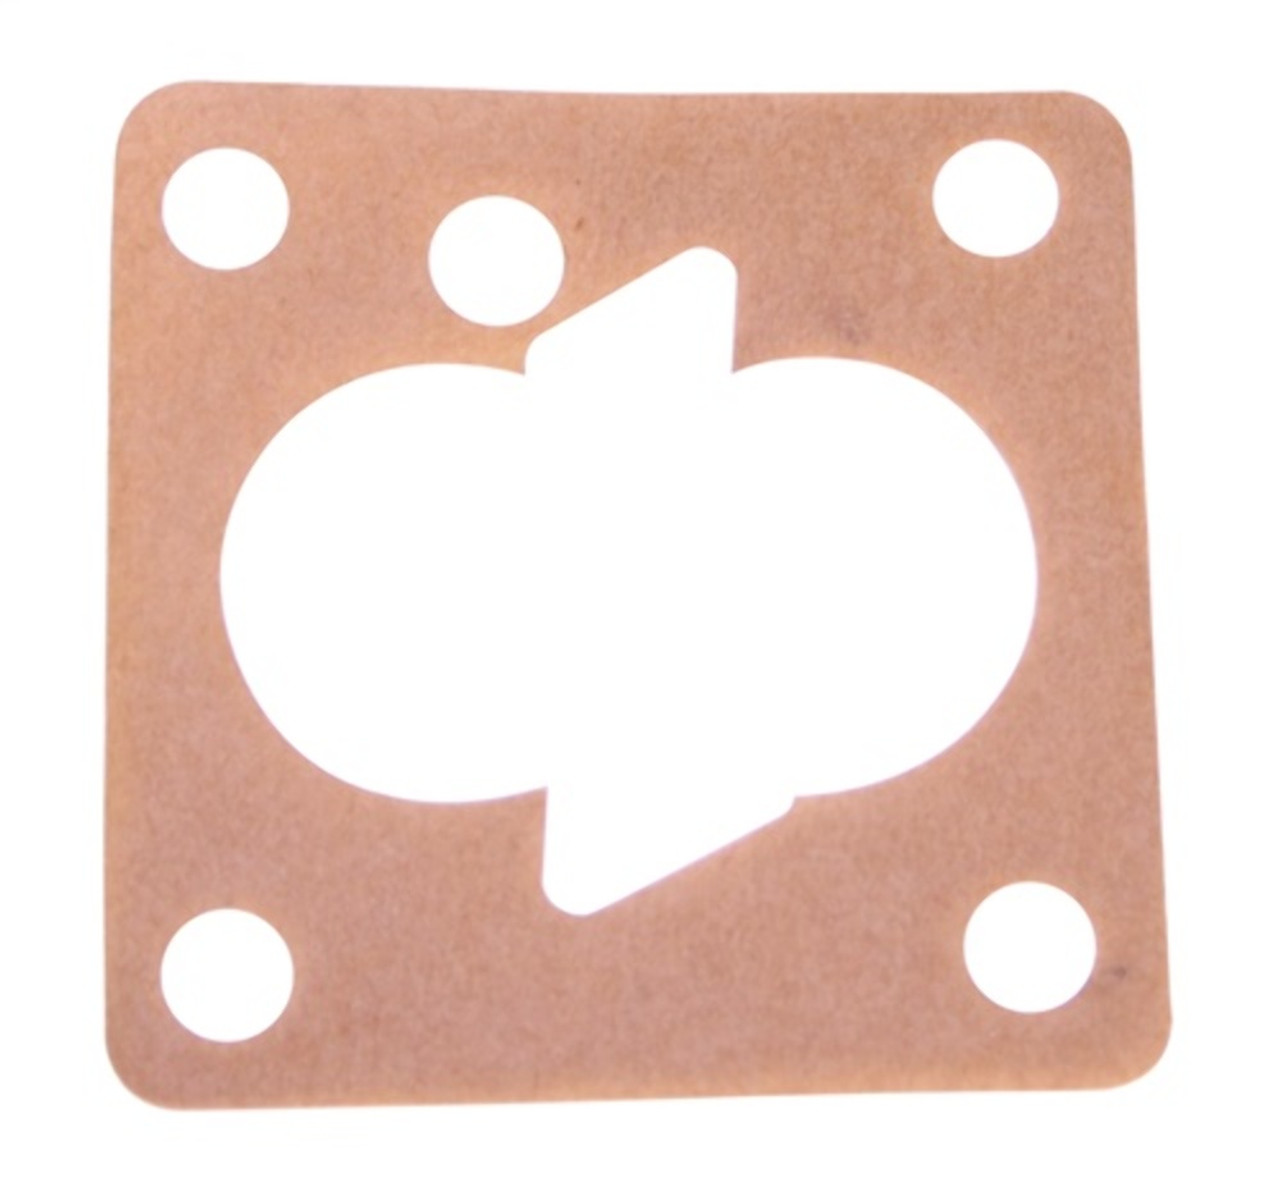 00-9207-5 PUMP COVER GASKET ONLY